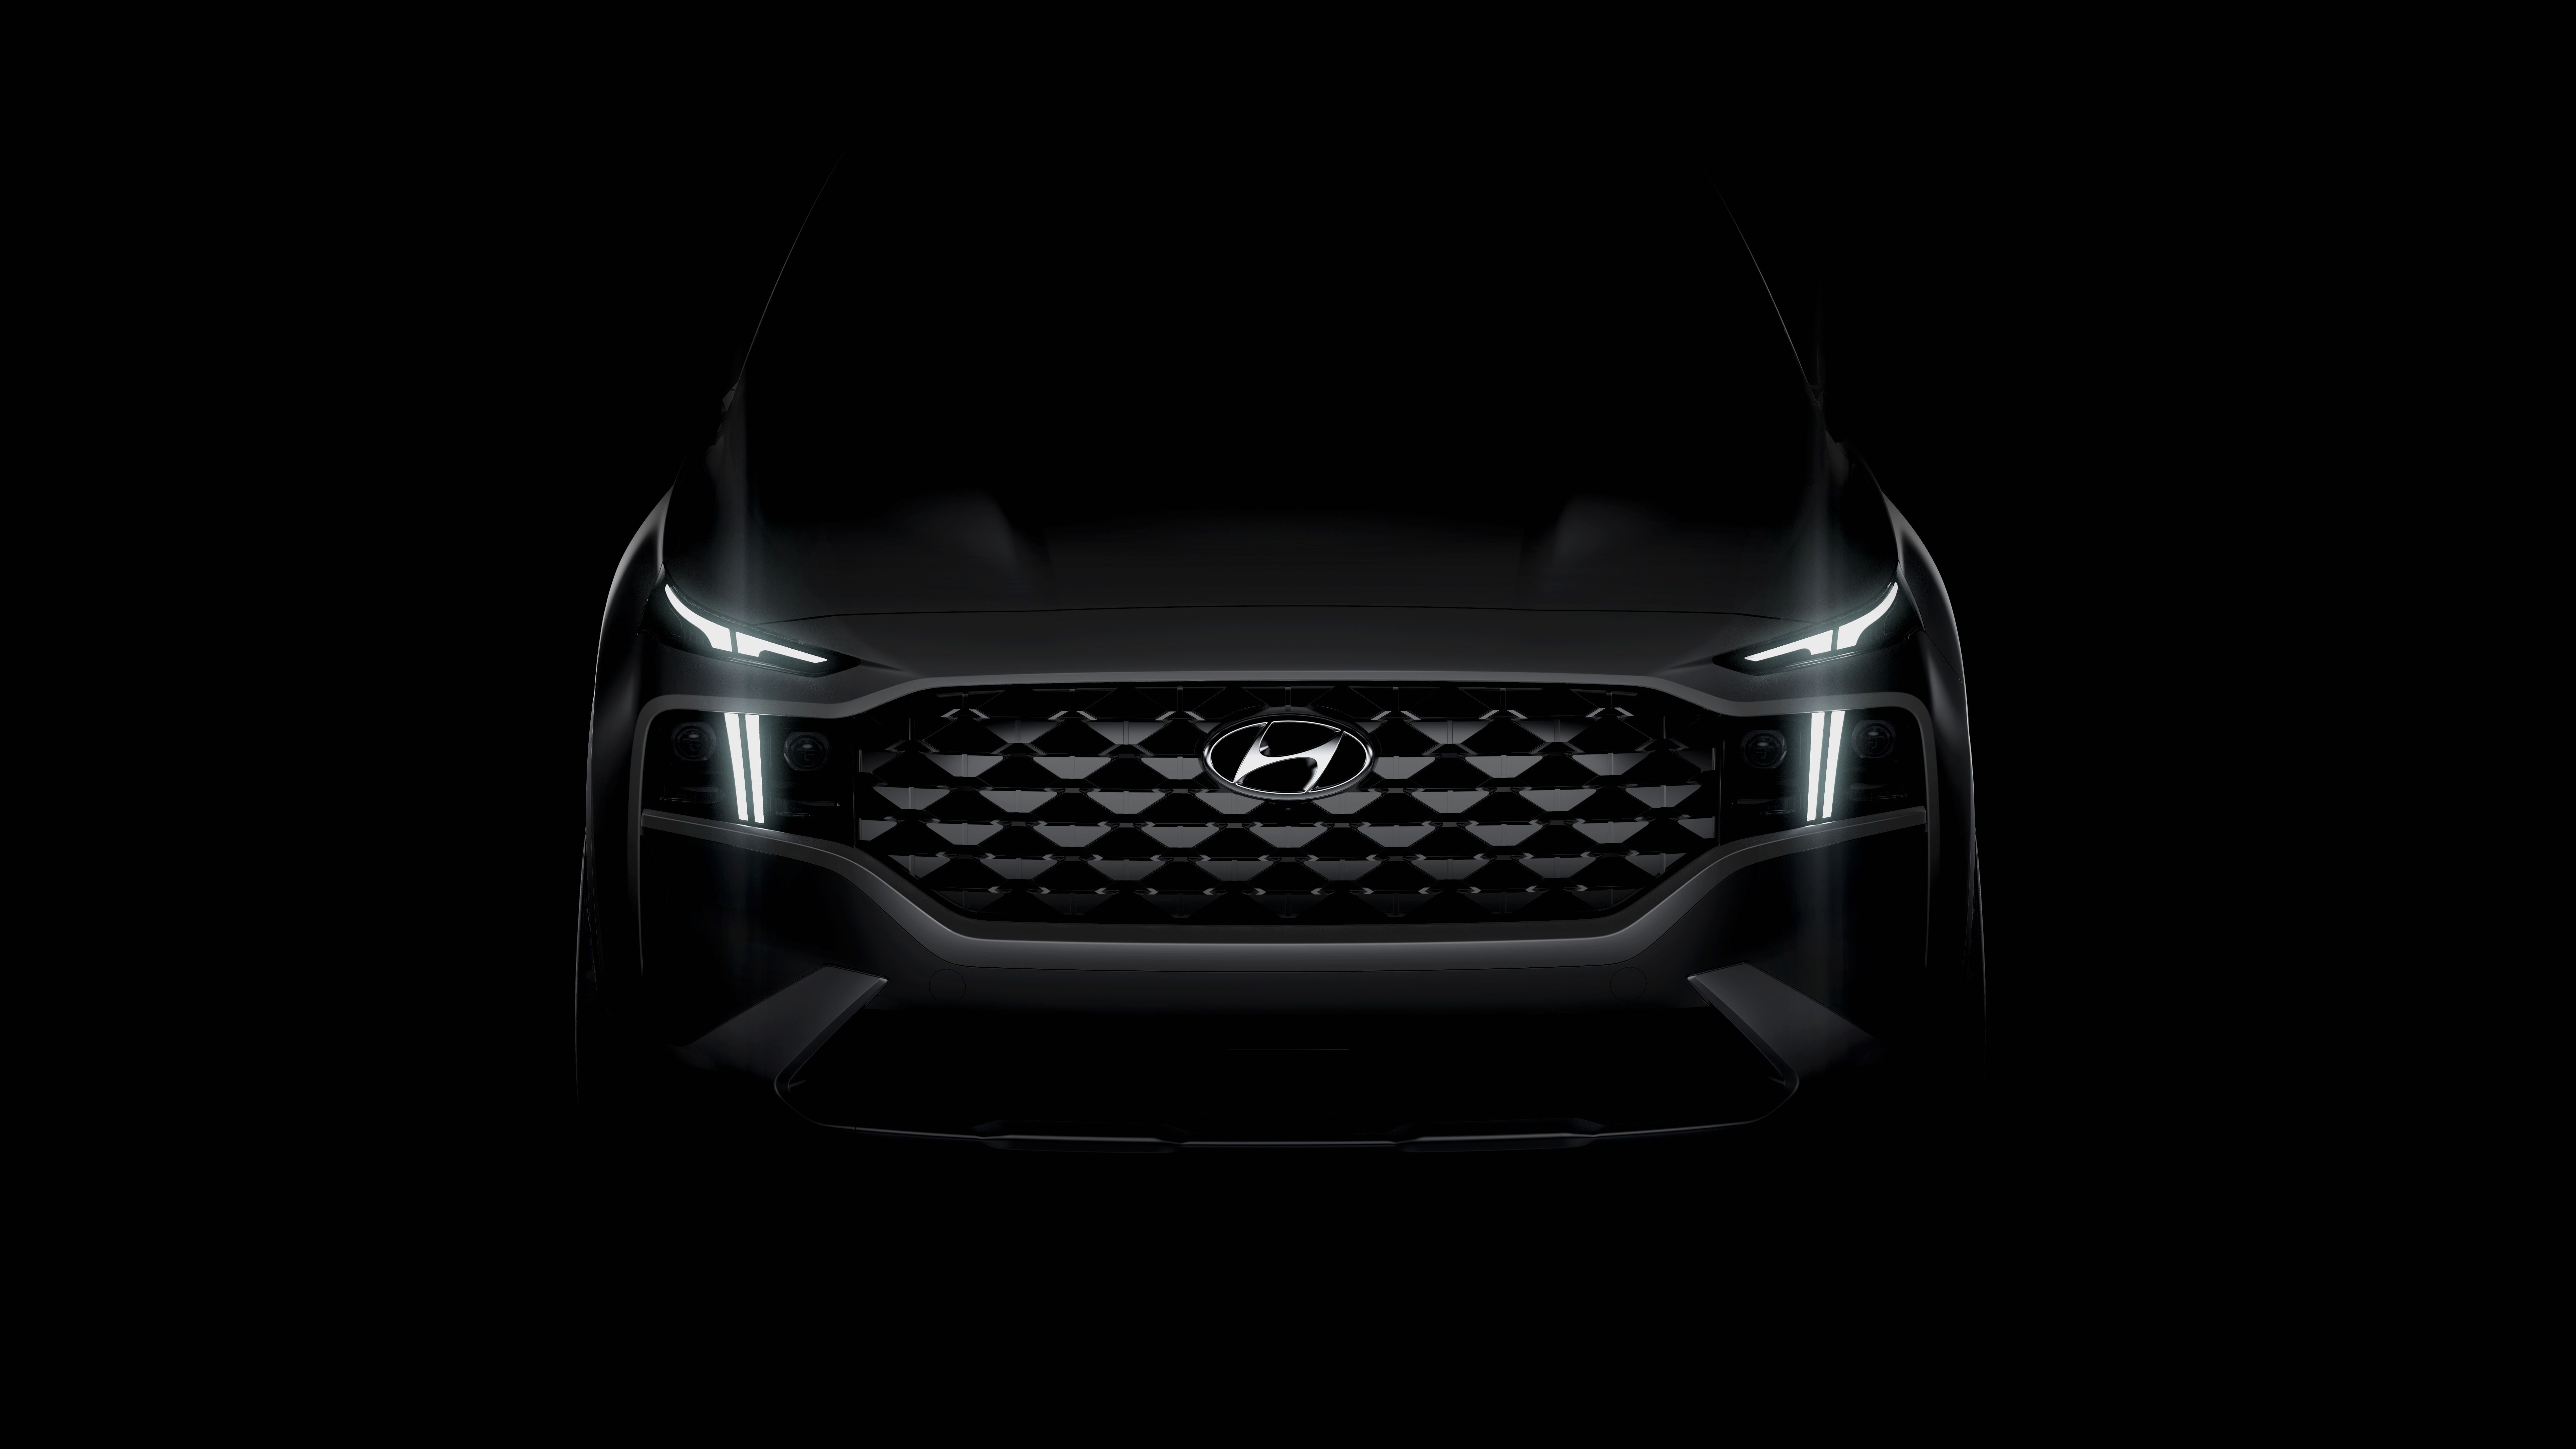 2021 Hyundai Santa Fe Will Get Styling Updates New Tech Features